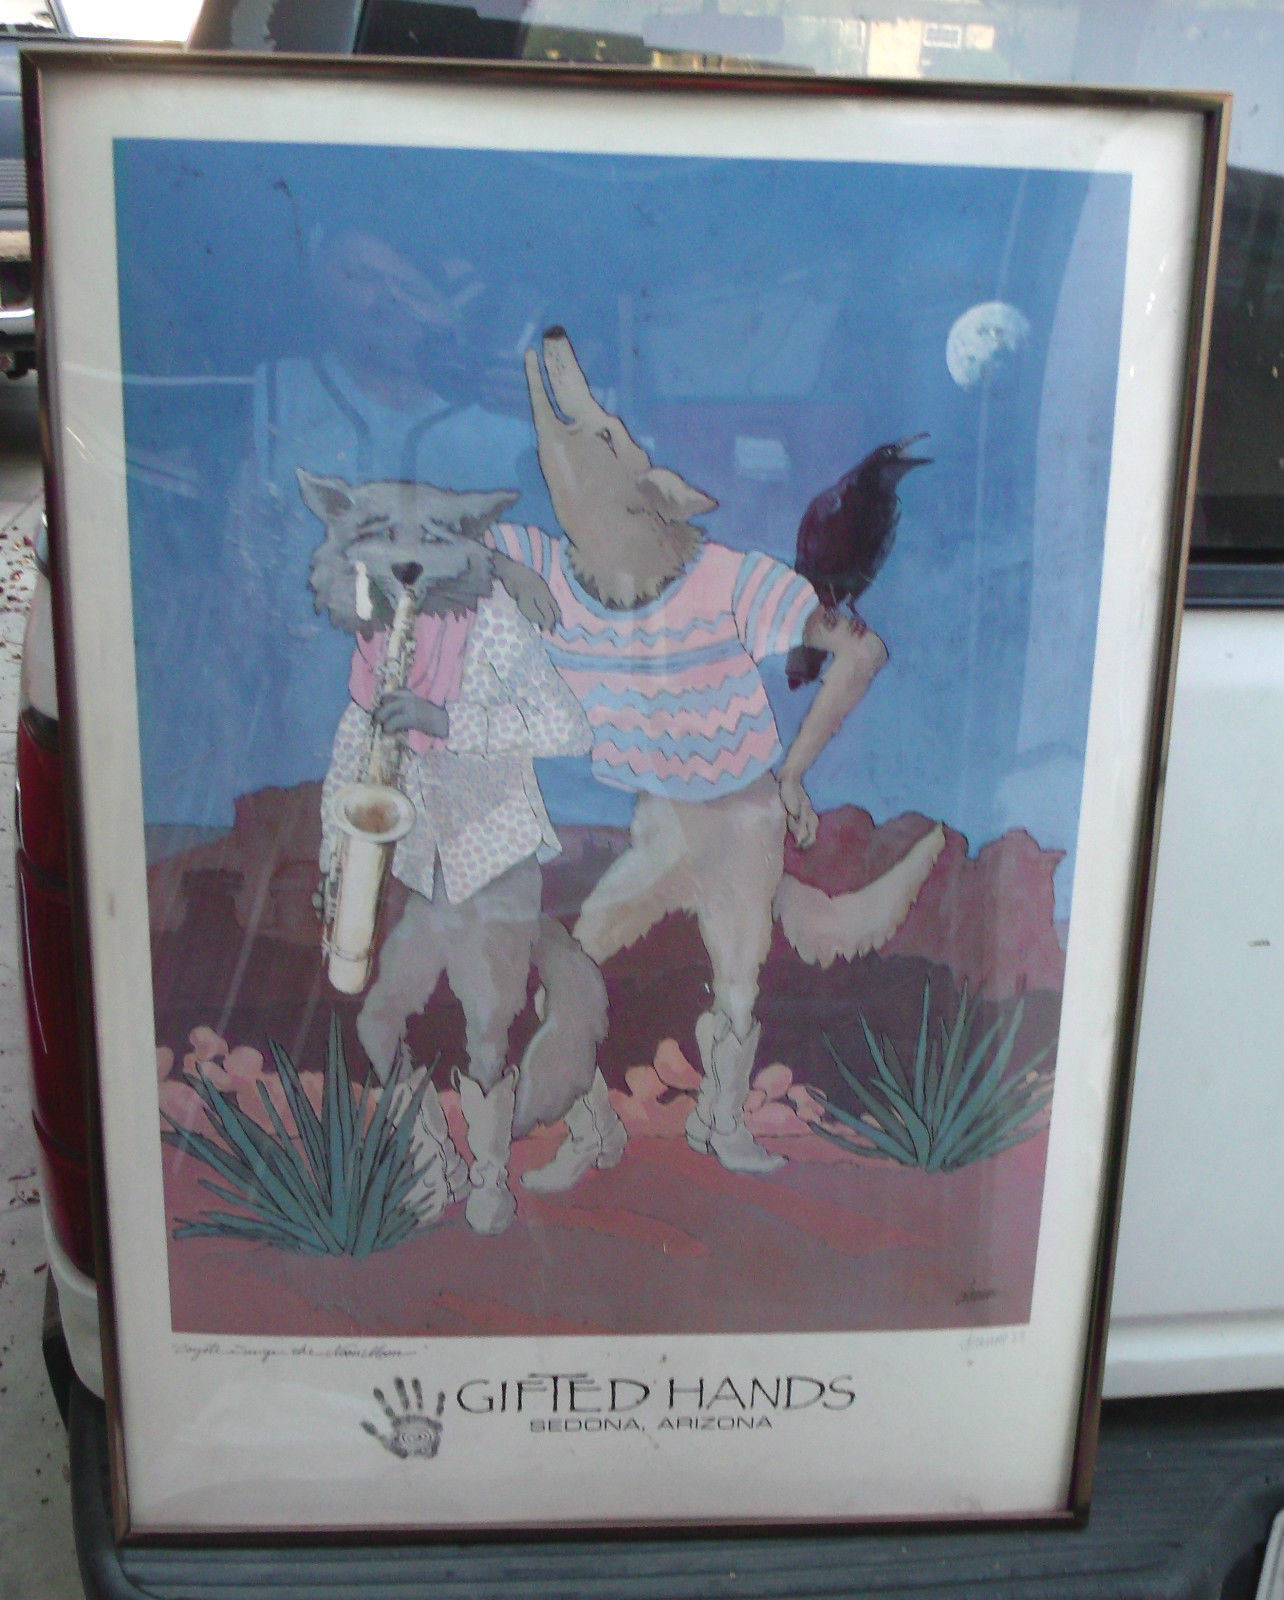 COYOTE SINGS THE NOON MOON SIGNED 20X28 POSTER BY DEANNE GIFTED HANDS